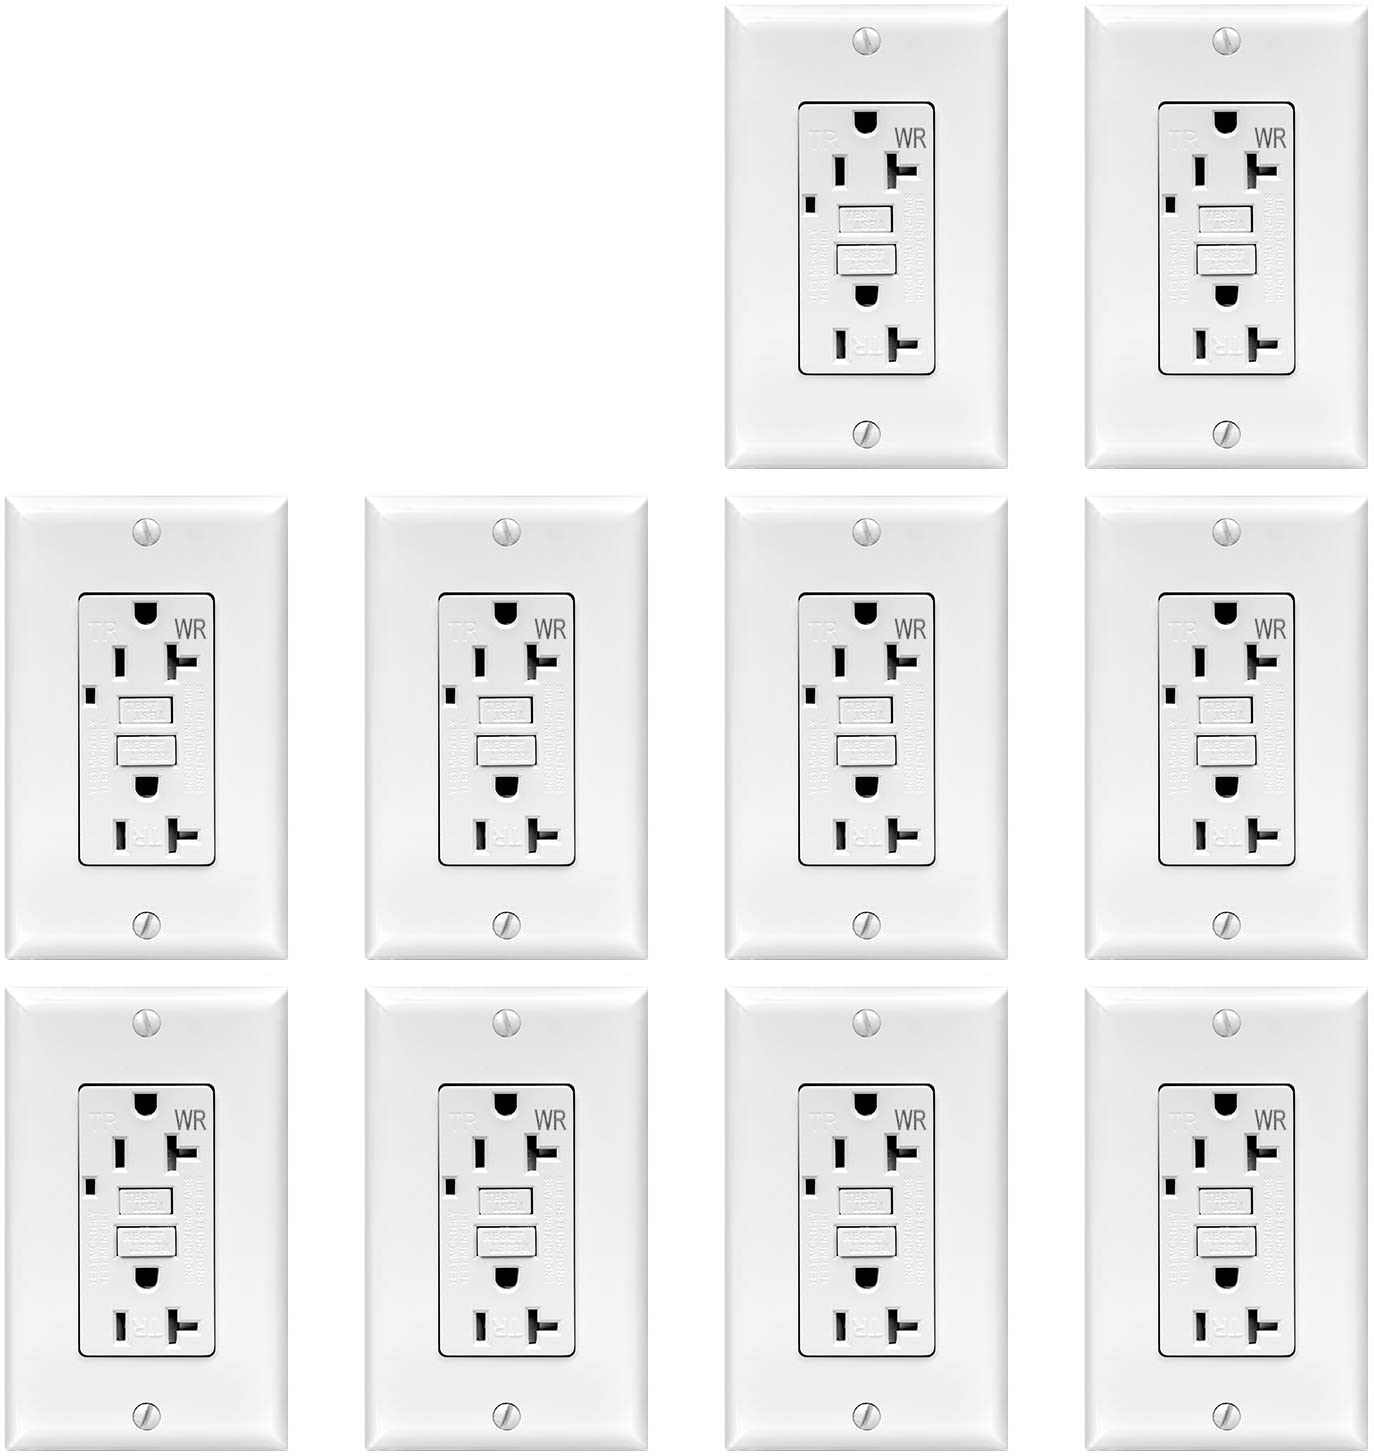 TOPELE 20Amp GFCI Outlet 125 Volt Tamper-Resistant, Weather-Resistant Receptacle, LED Indicator Lights, 1 Wall Plate and Screws Included, White, Pack of 10, UL Listed